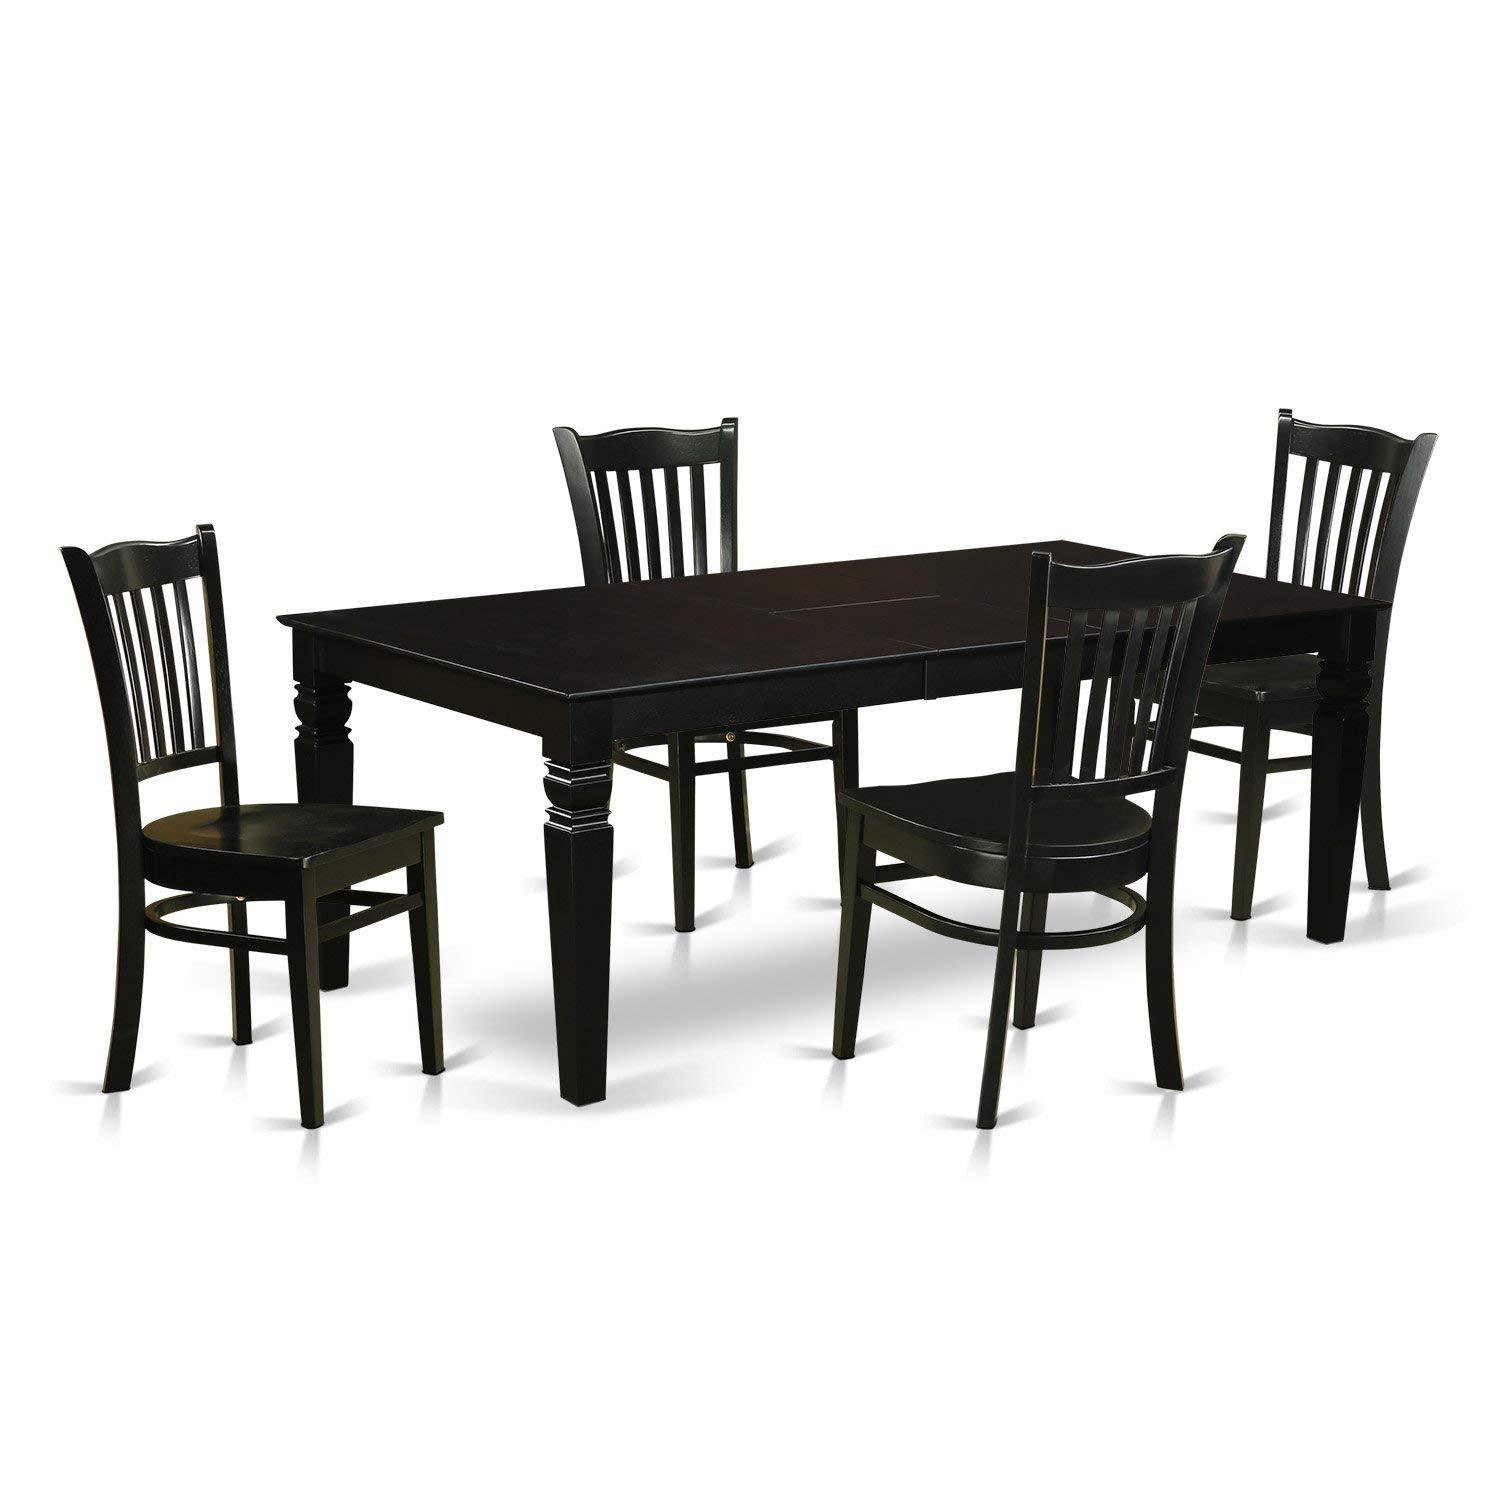 East West Furniture LGGR5-BLK-W 5 Piece Dining Table and 4 Wood Kitchen Chairs, Black